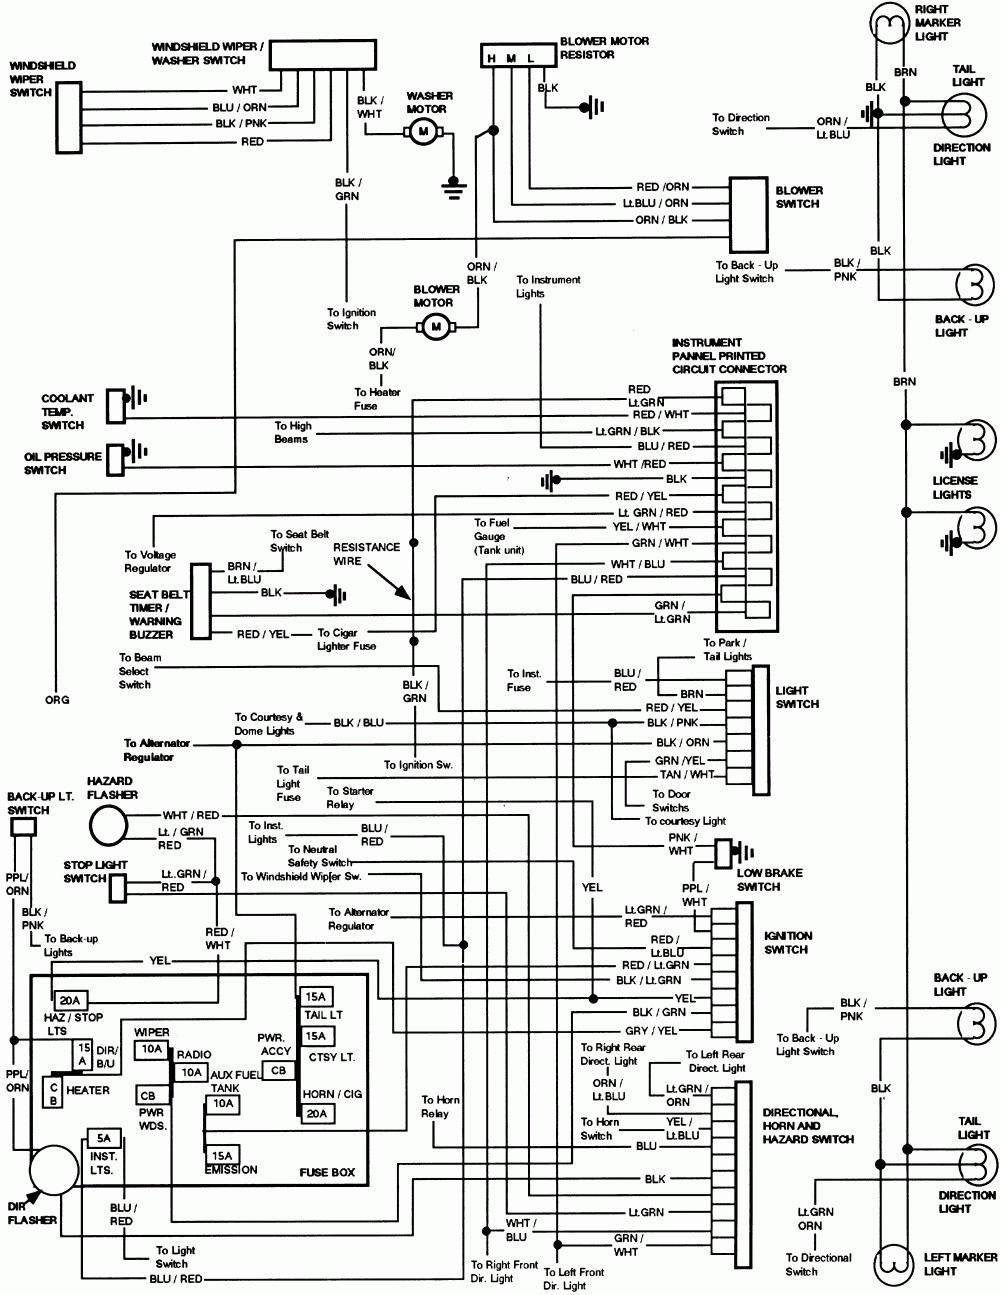 hight resolution of 1983 ford f 350 wiring harness free download wiring diagram load stater solenoid wiring diagram f 350 super duty